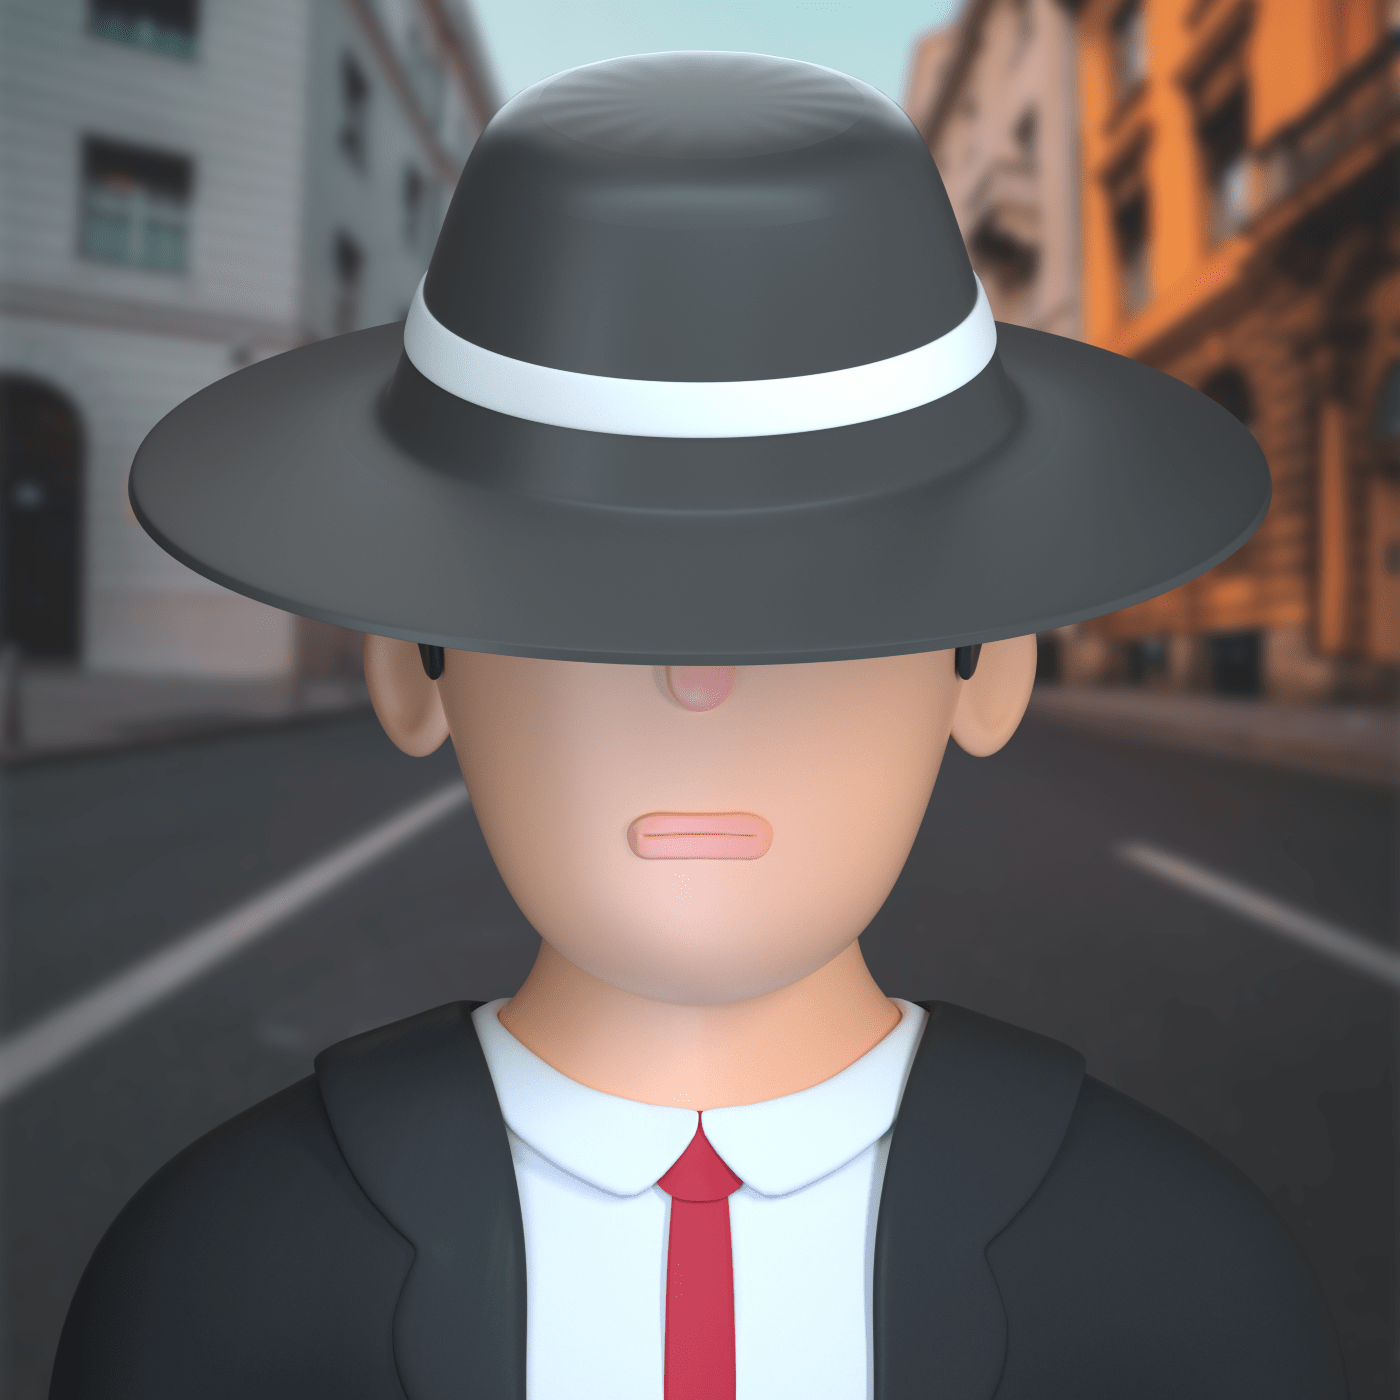 a detective character in 3d design style